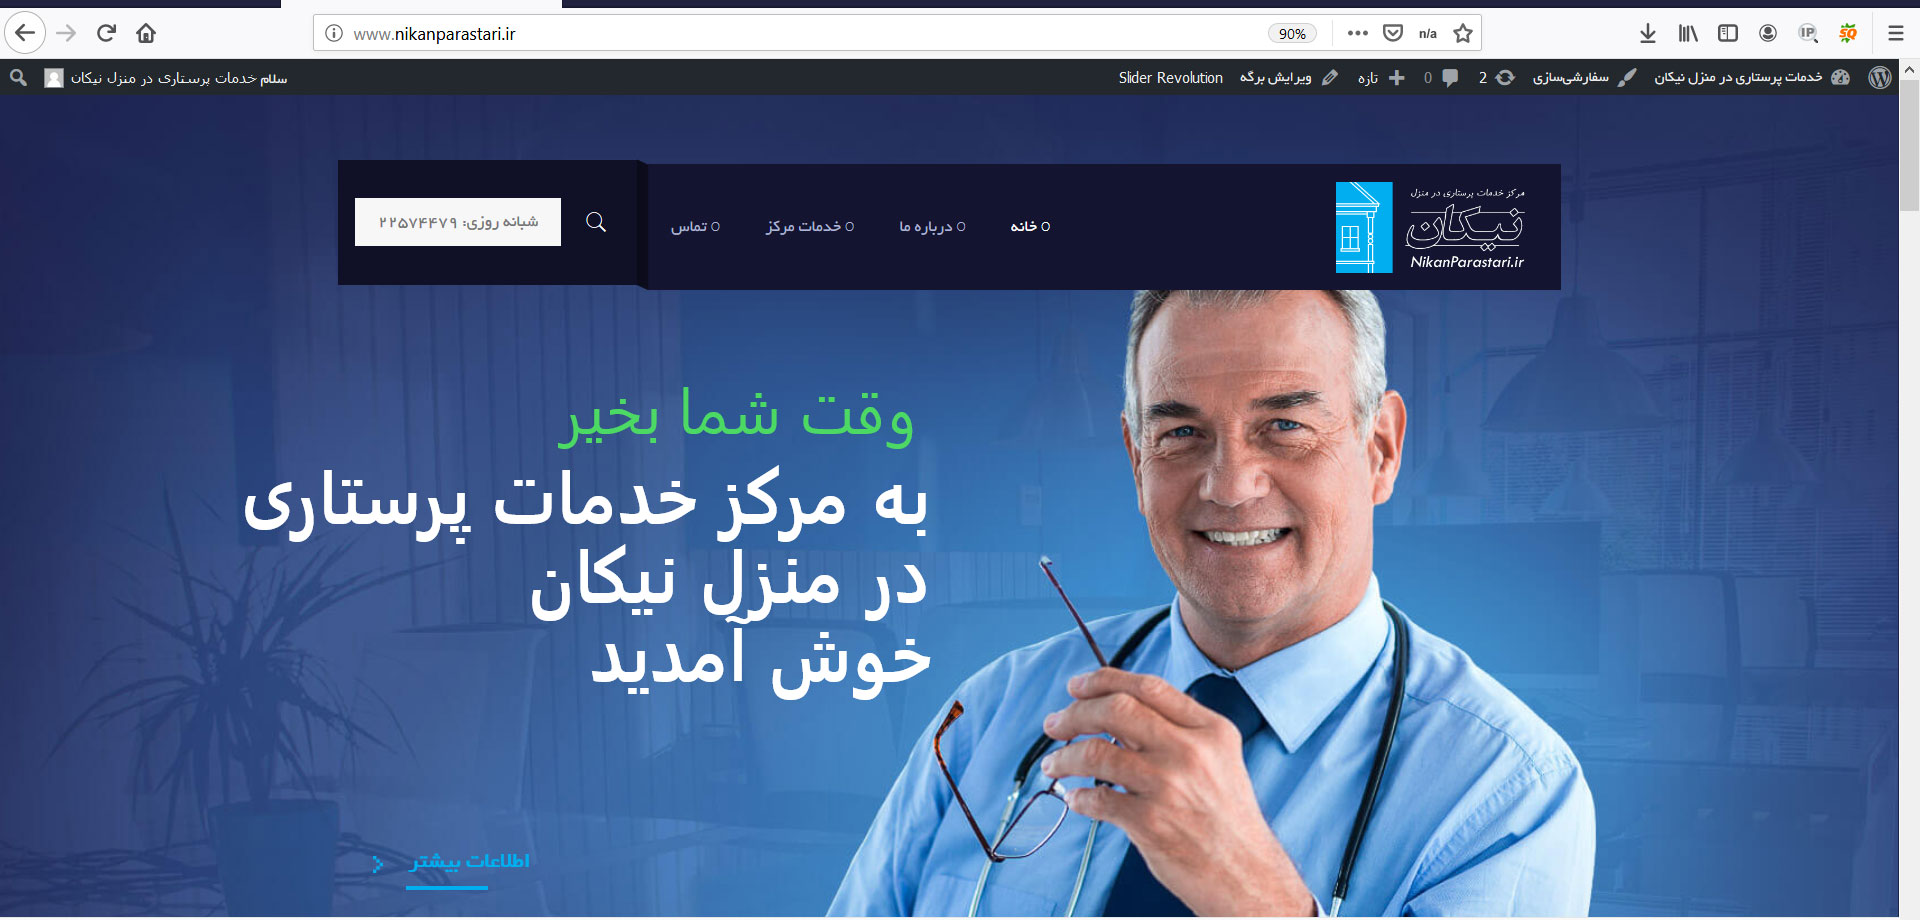 Medical - Healthcare and clinic website design